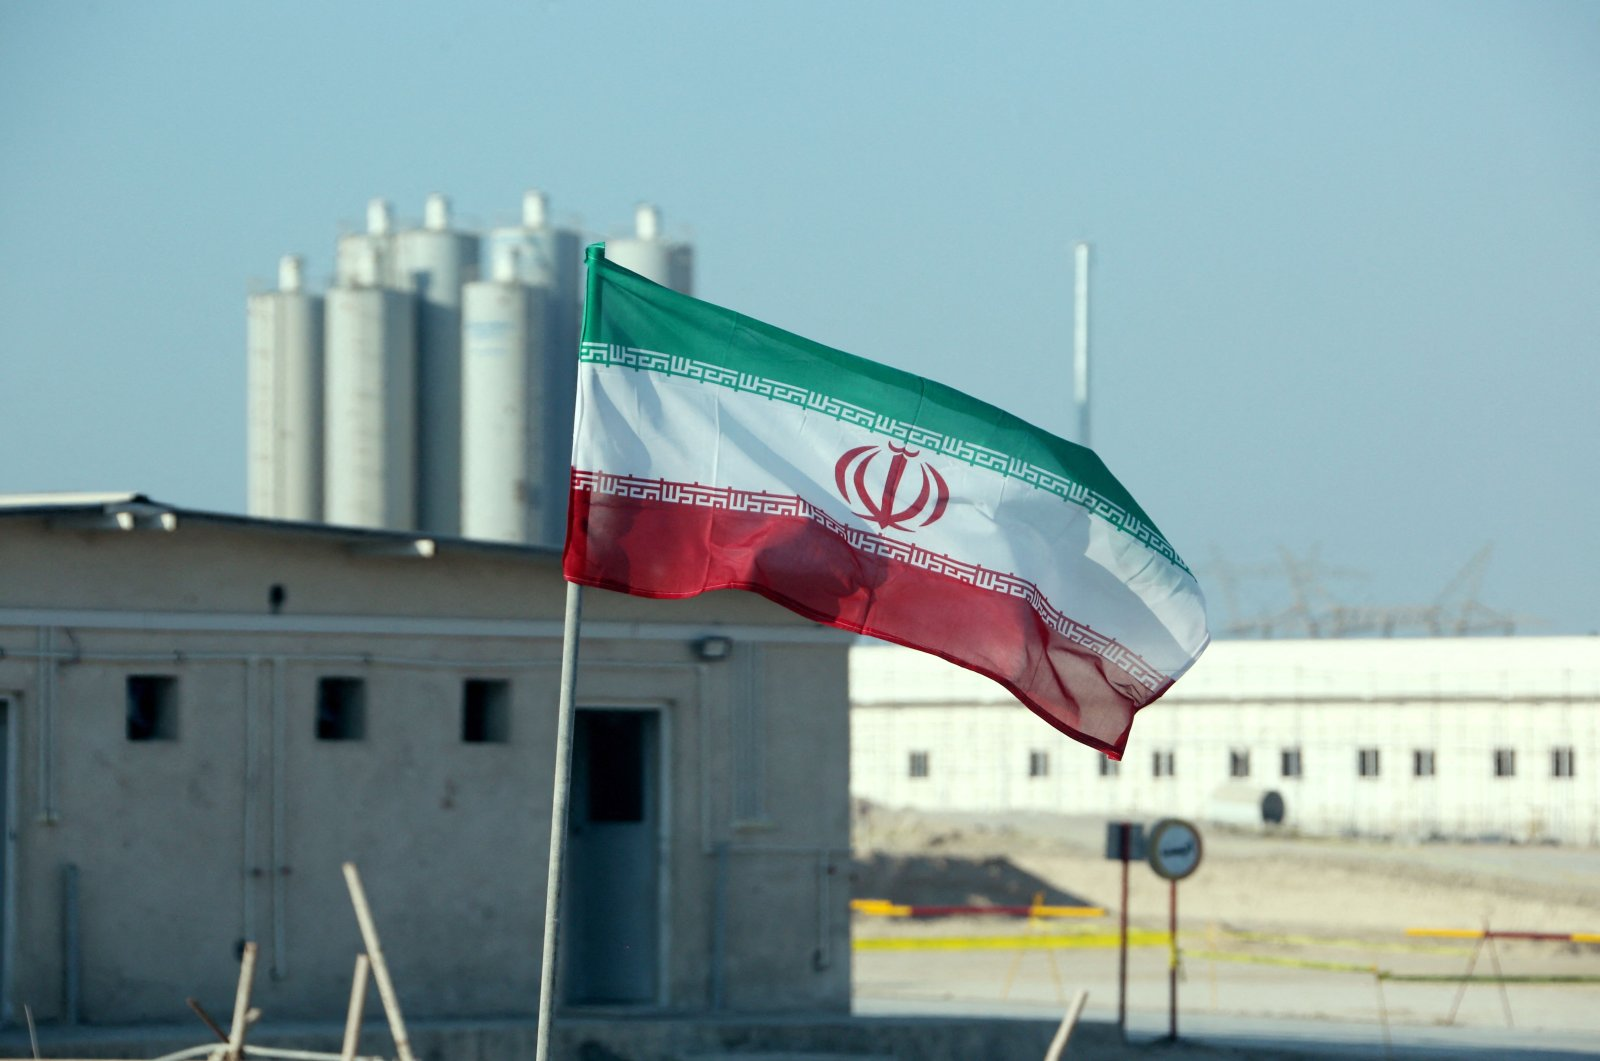 This file photo taken on November 10, 2019, shows an Iranian flag at Iran's Bushehr nuclear power plant, during an official ceremony to kick-start work on a second reactor at the facility. (AFP Photo)